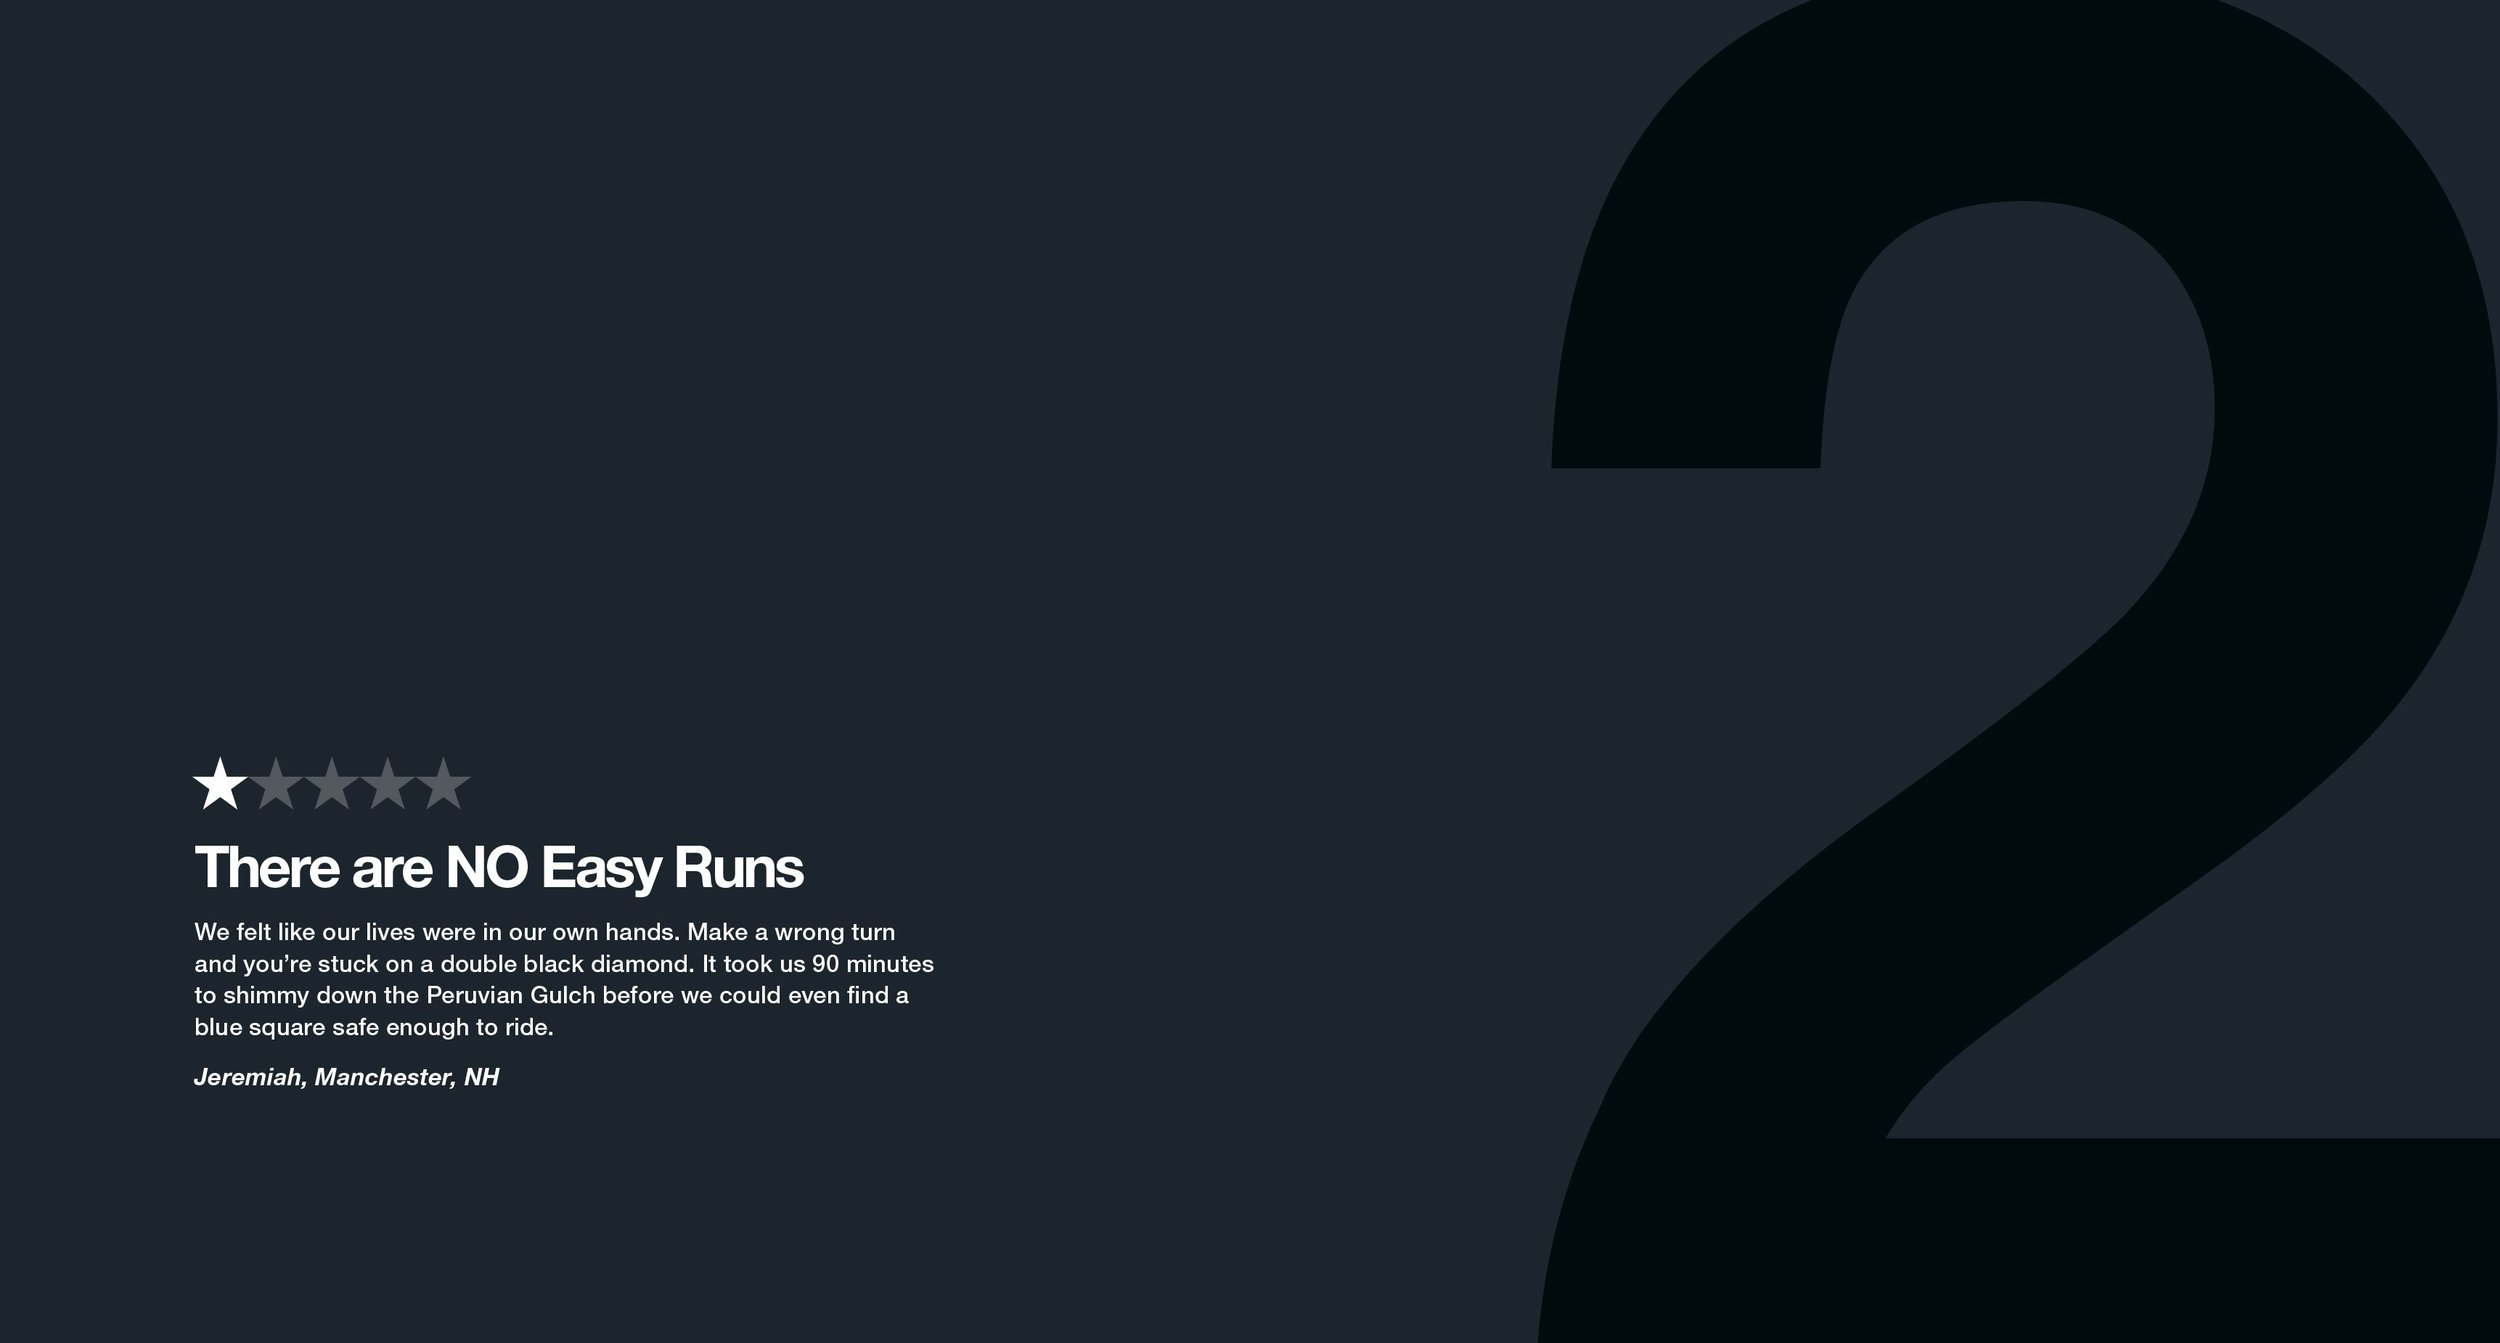 There are NO Easy Runs was the second review in the One-Star Review campaign